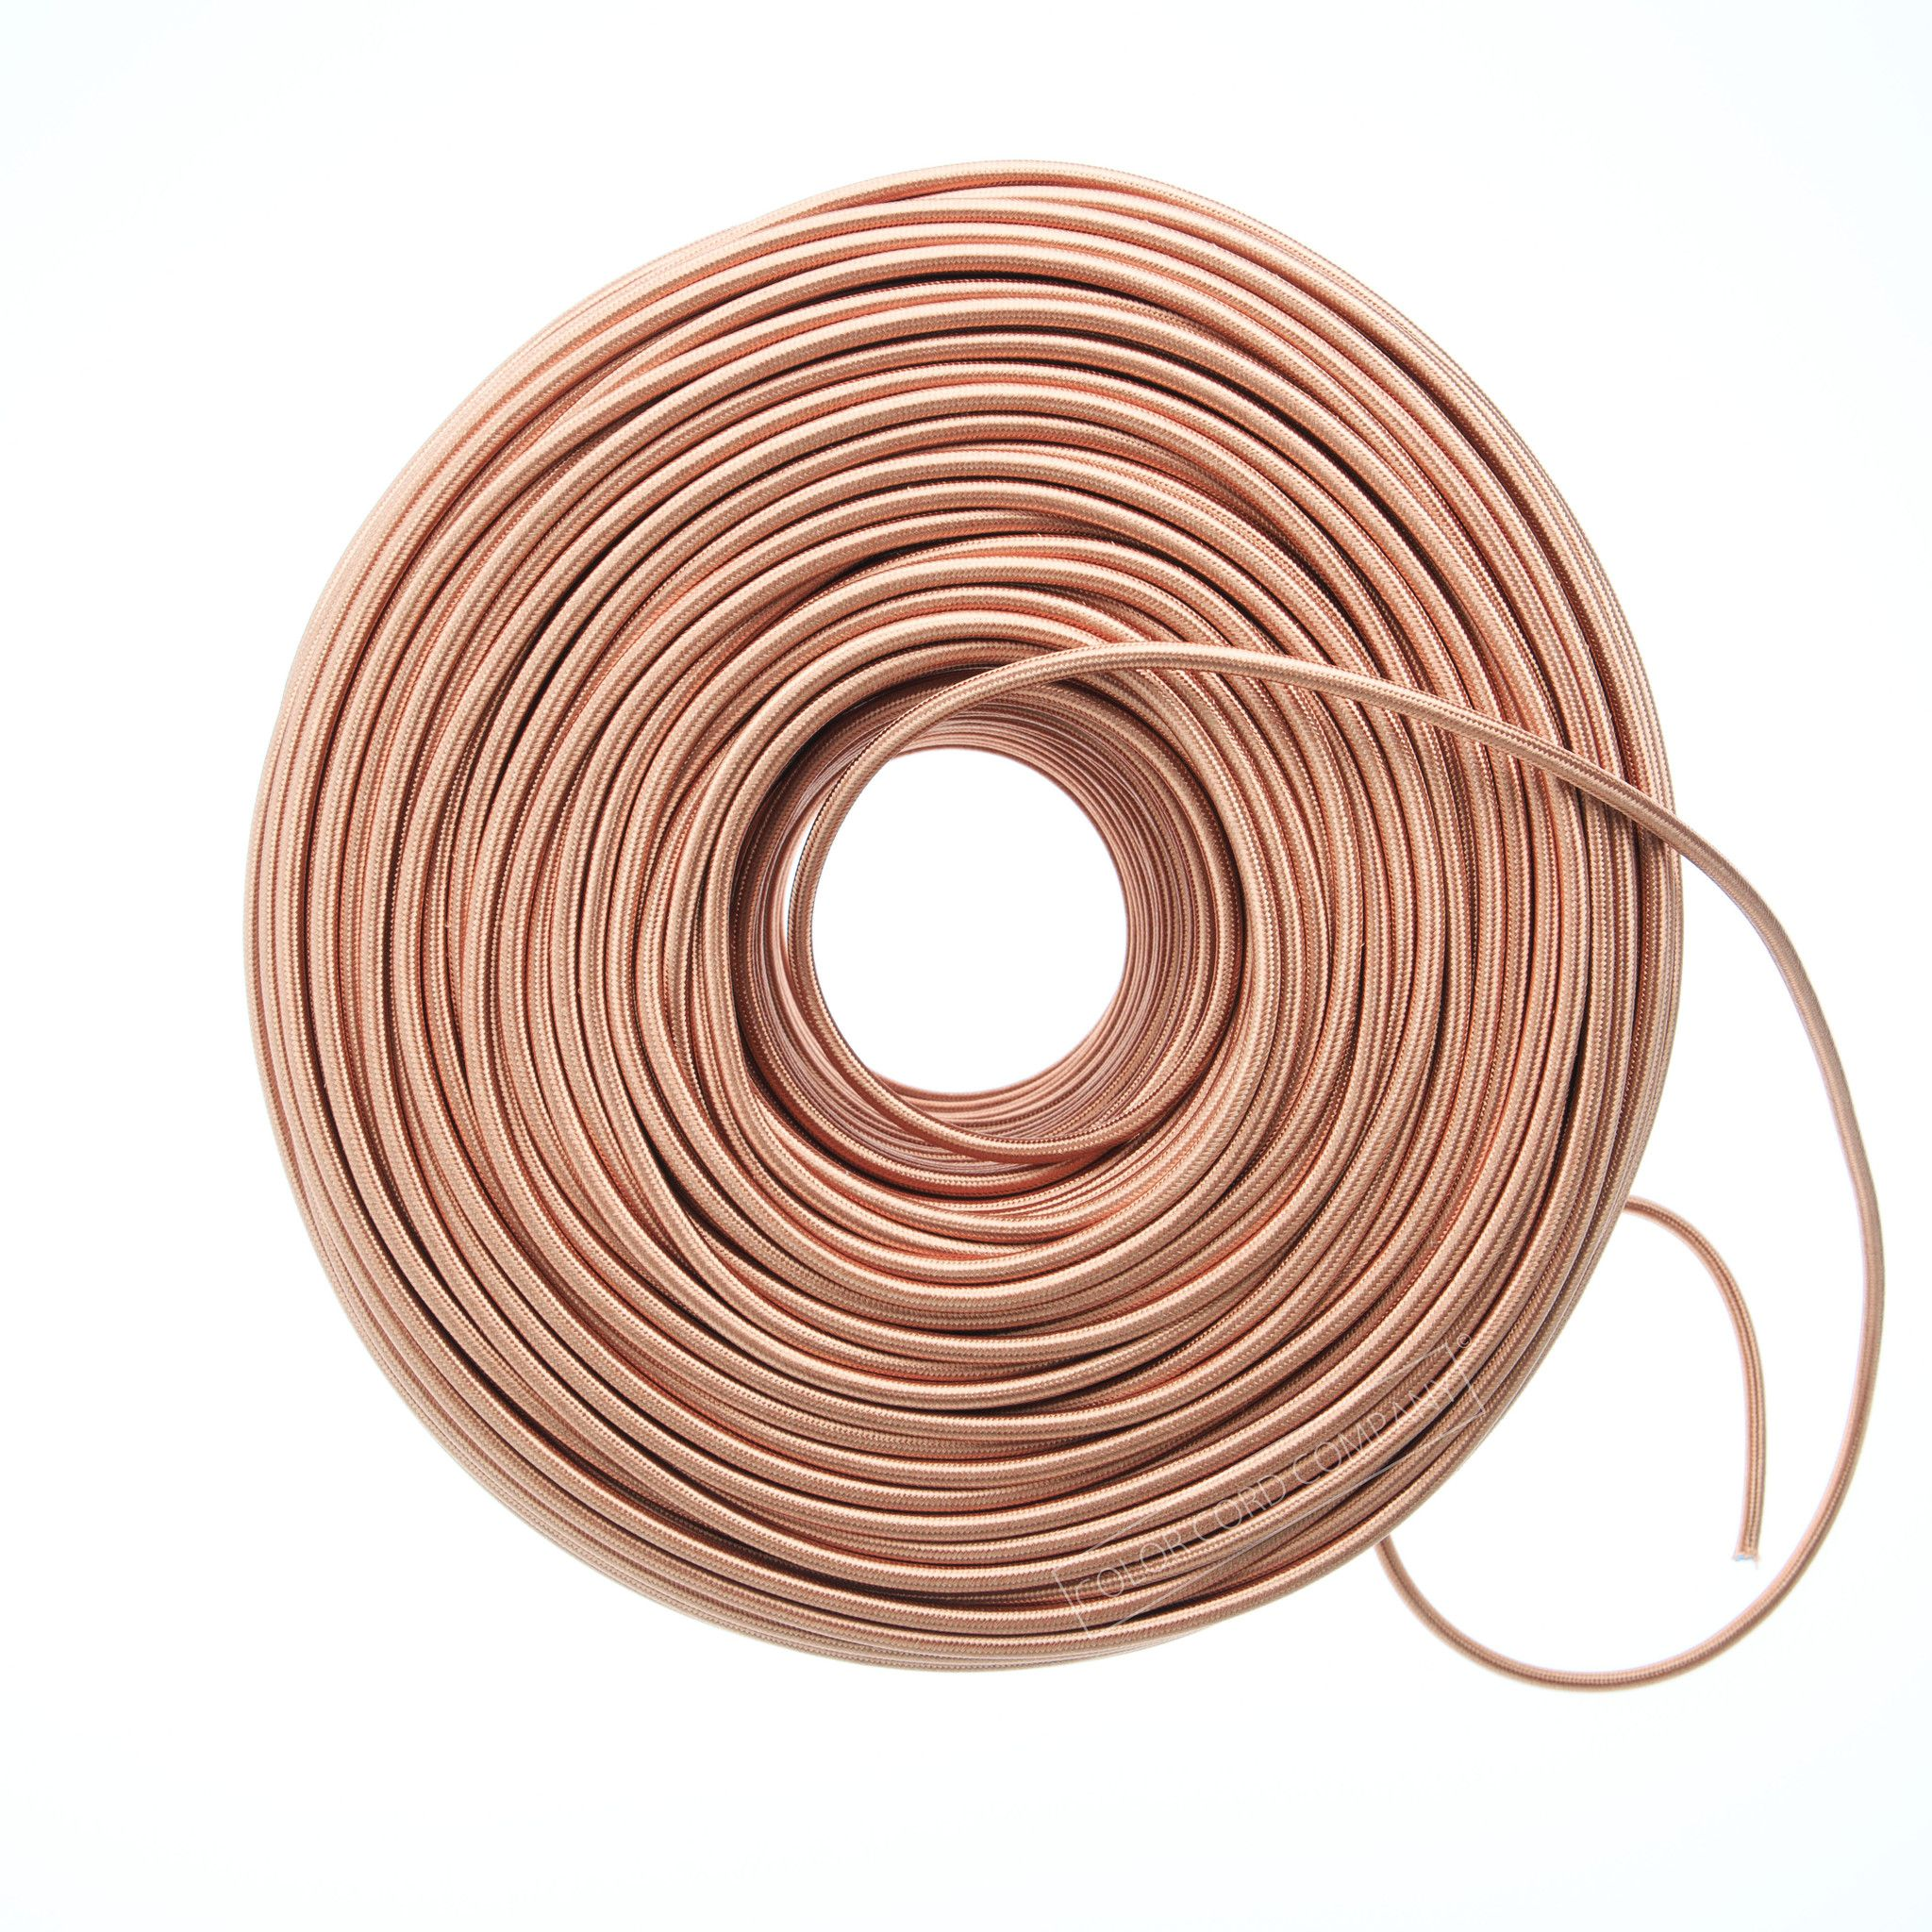 Cloth Covered Wire - Copper Penny | Color Cord Company